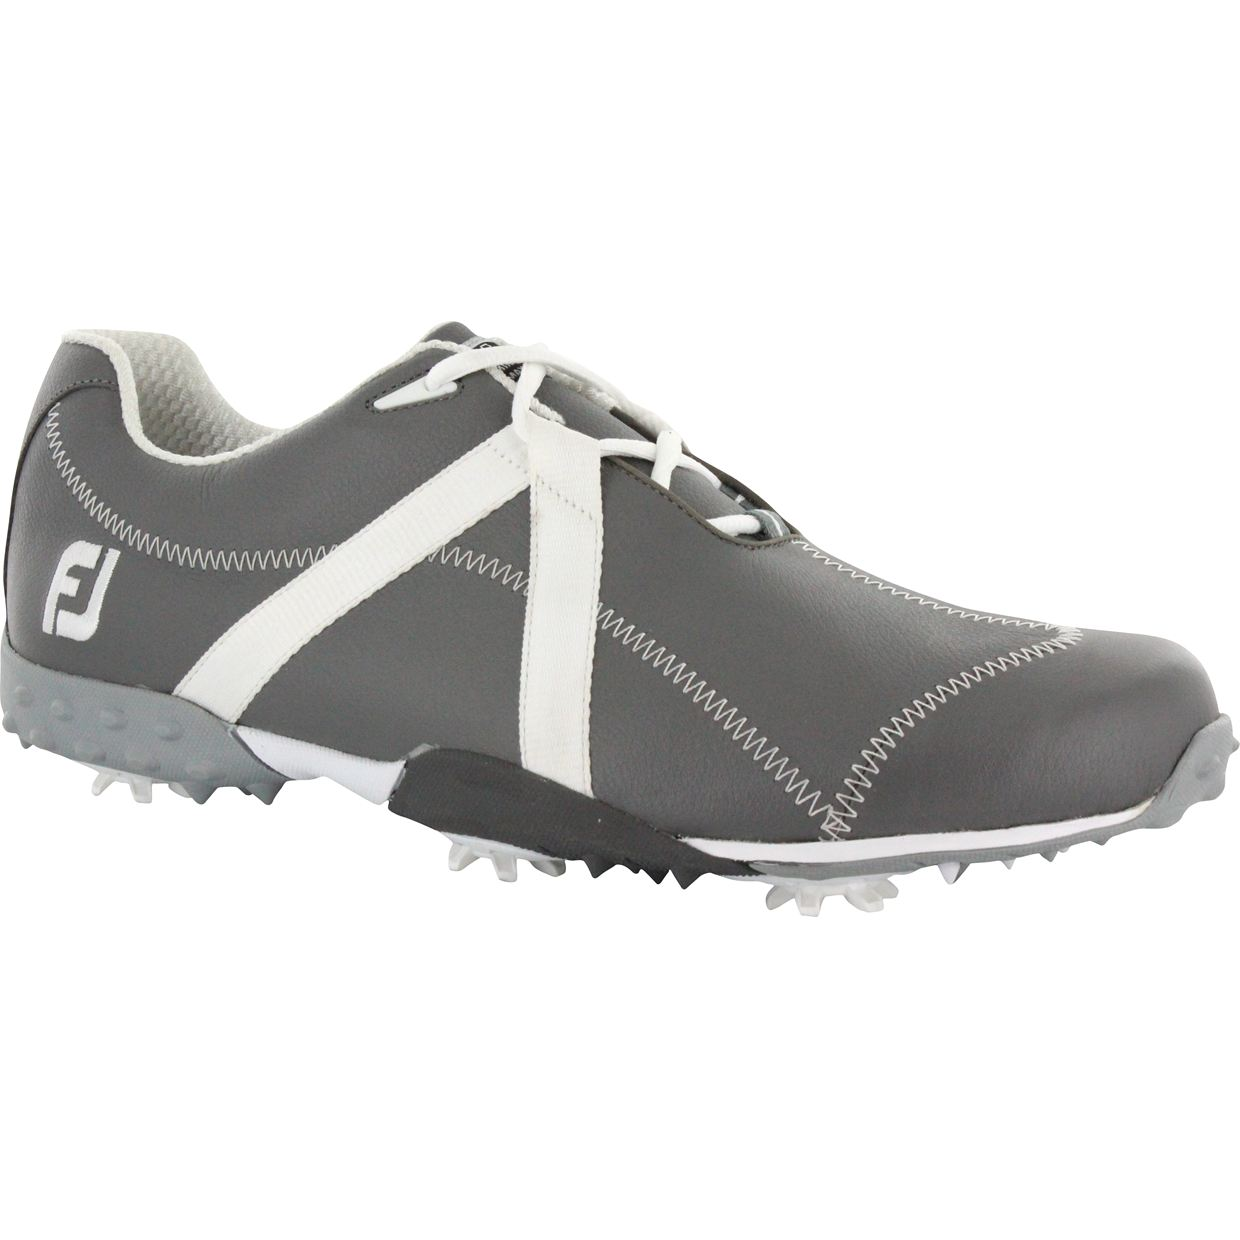 footjoy m project golf shoes Golf shoes for all seasonal conditions we stock thousands of the best-selling golf shoes from top-brands like adidas, footjoy, nike, and puma at our guaranteed lowest prices.